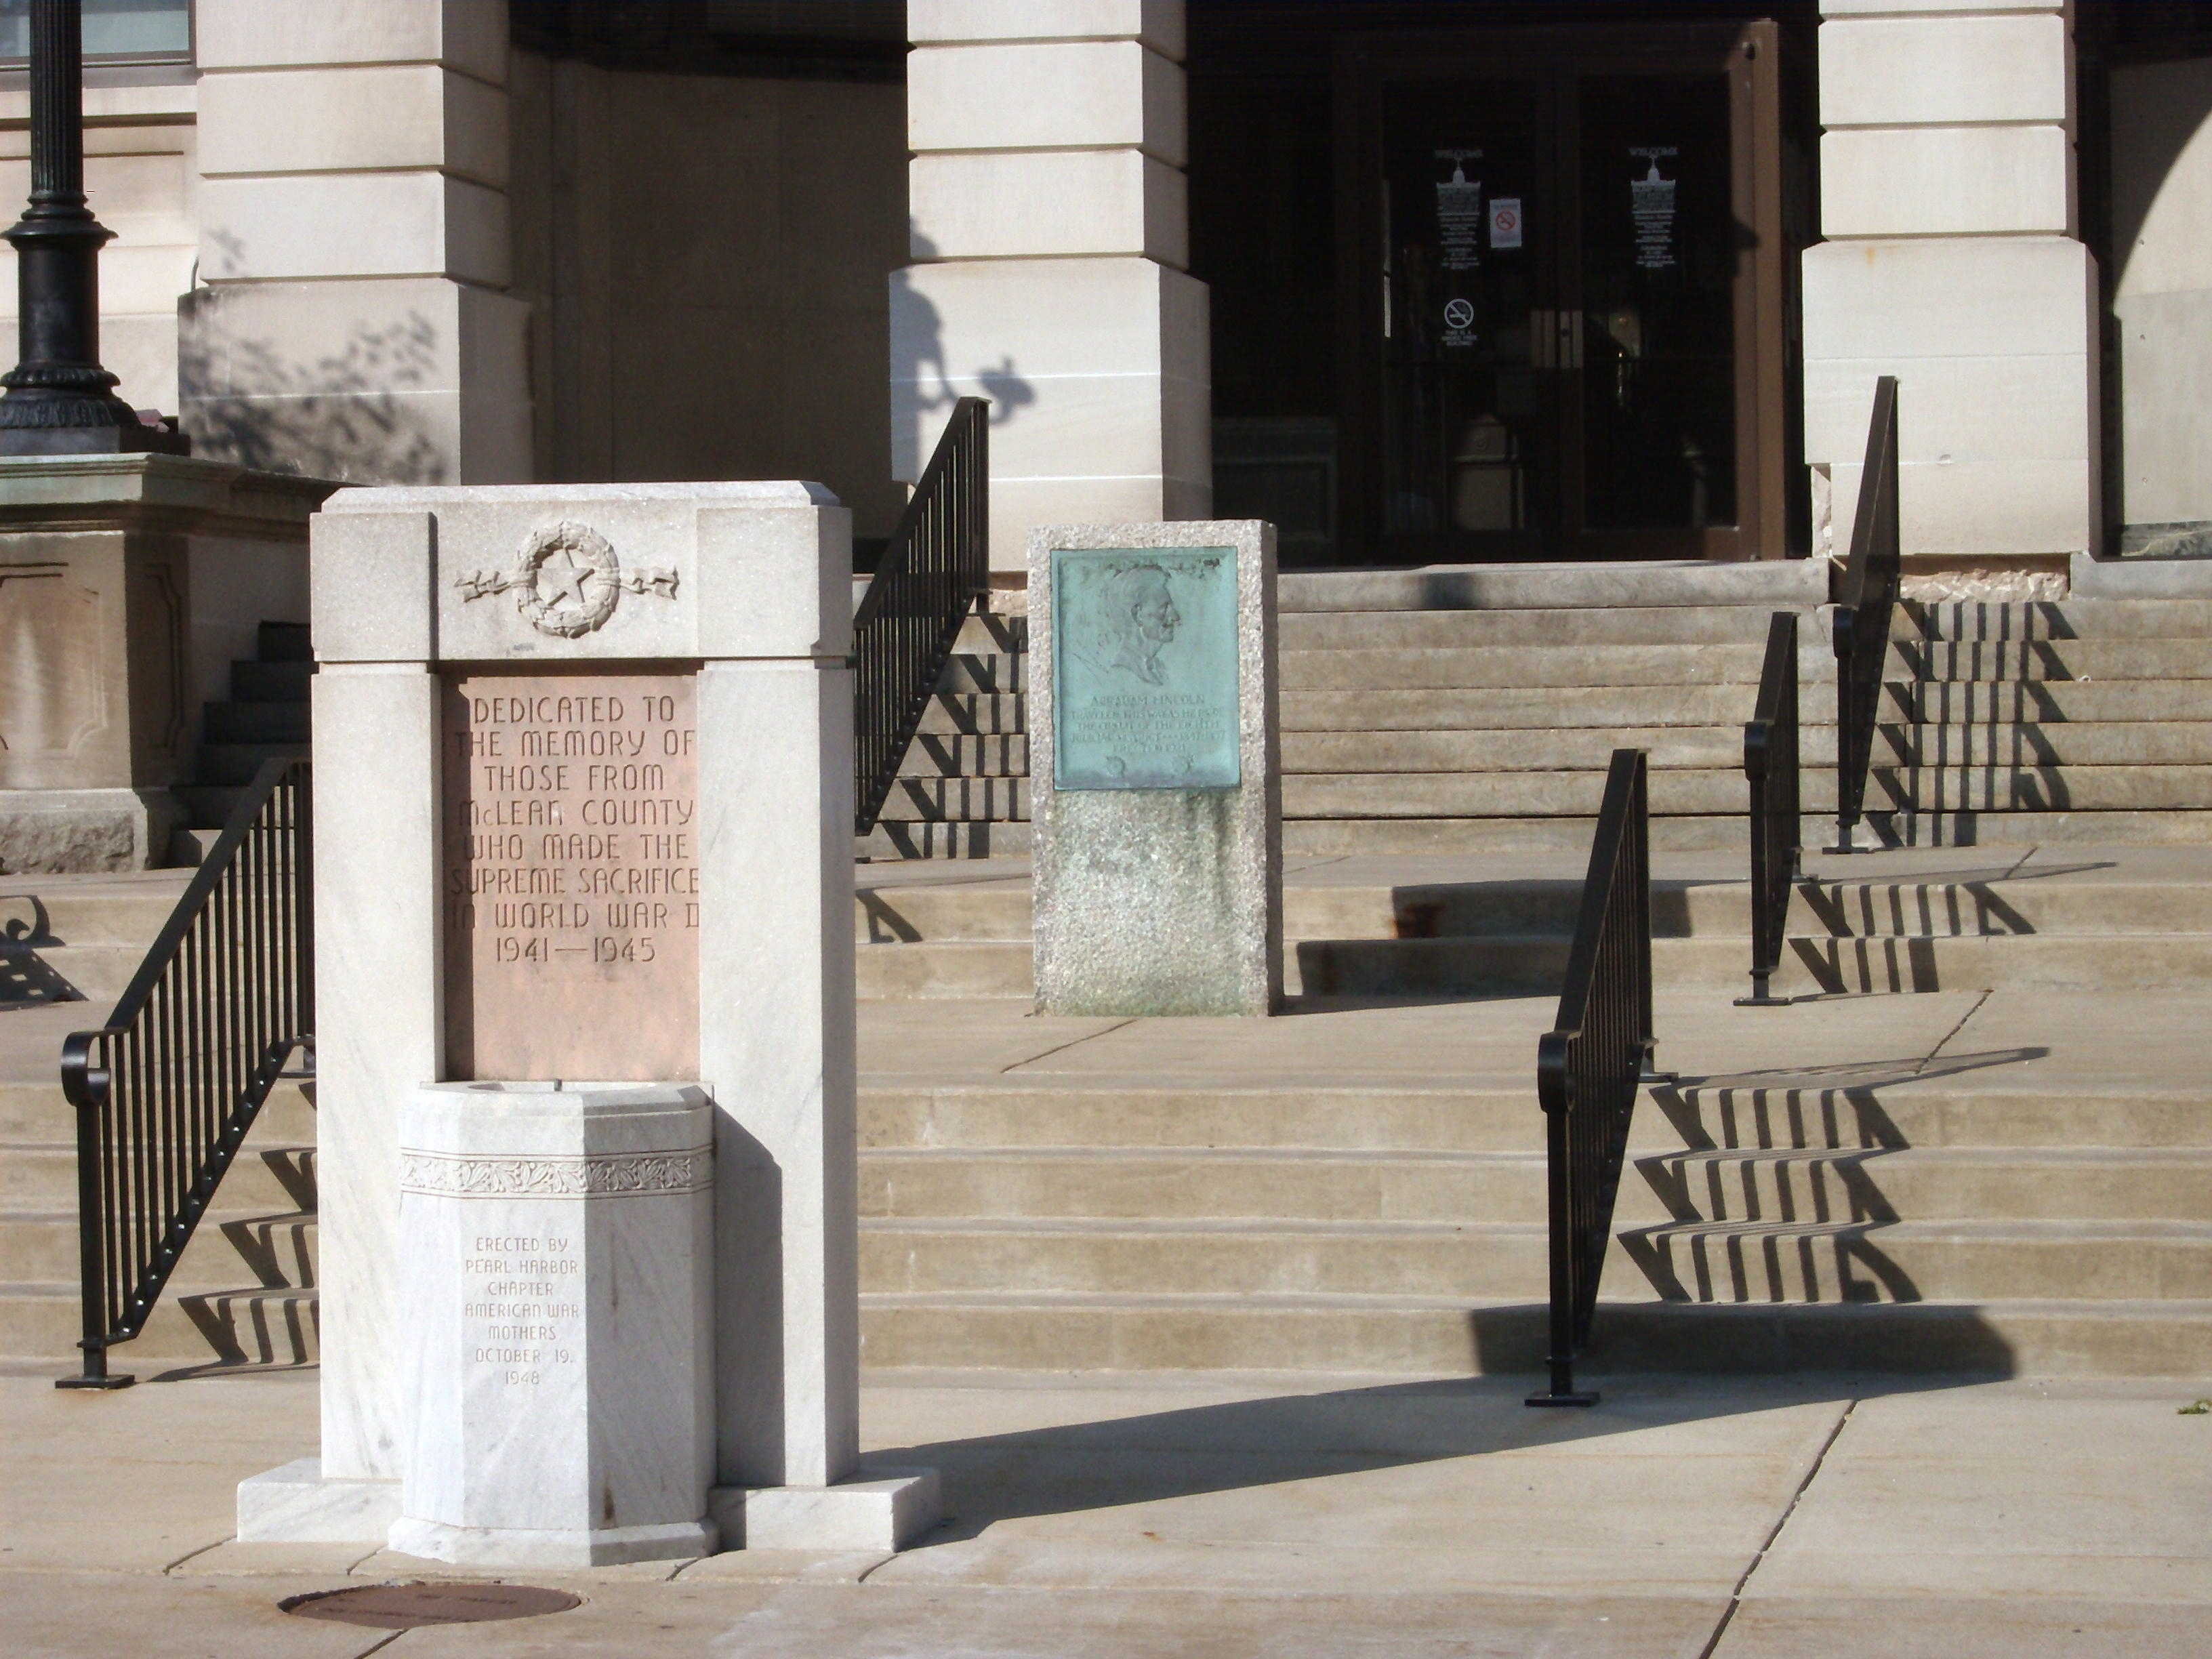 Entrance to McLean County Museum - War Memorial